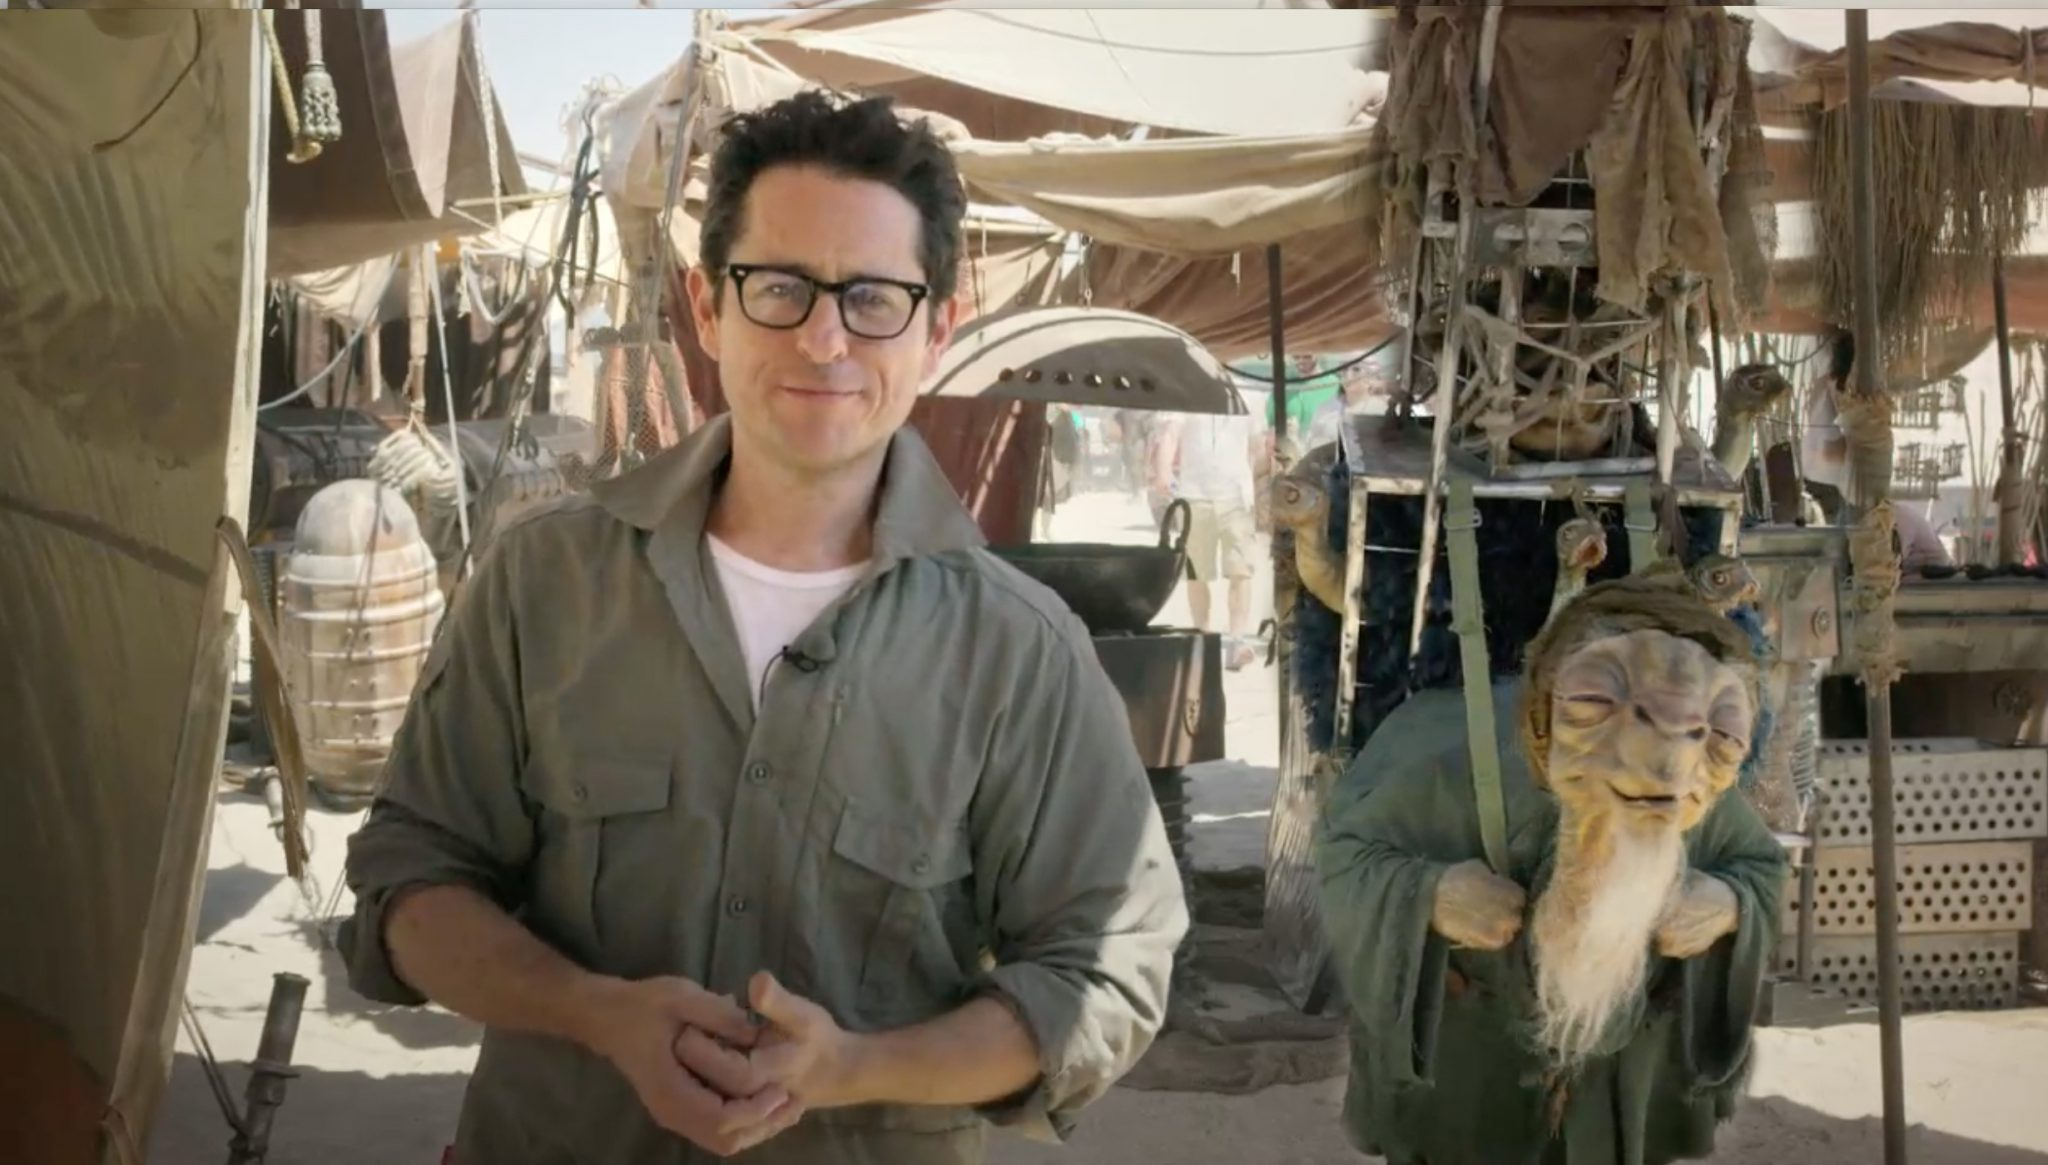 Star Wars: Episode VII, director J.J. Abrams announced the creation of Star Wars: Force for Change, a brand new Star Wars initiative from Disney and Lucasfilm in collaboration with Bad Robot dedicated to finding creative solutions to some of the world's biggest problems